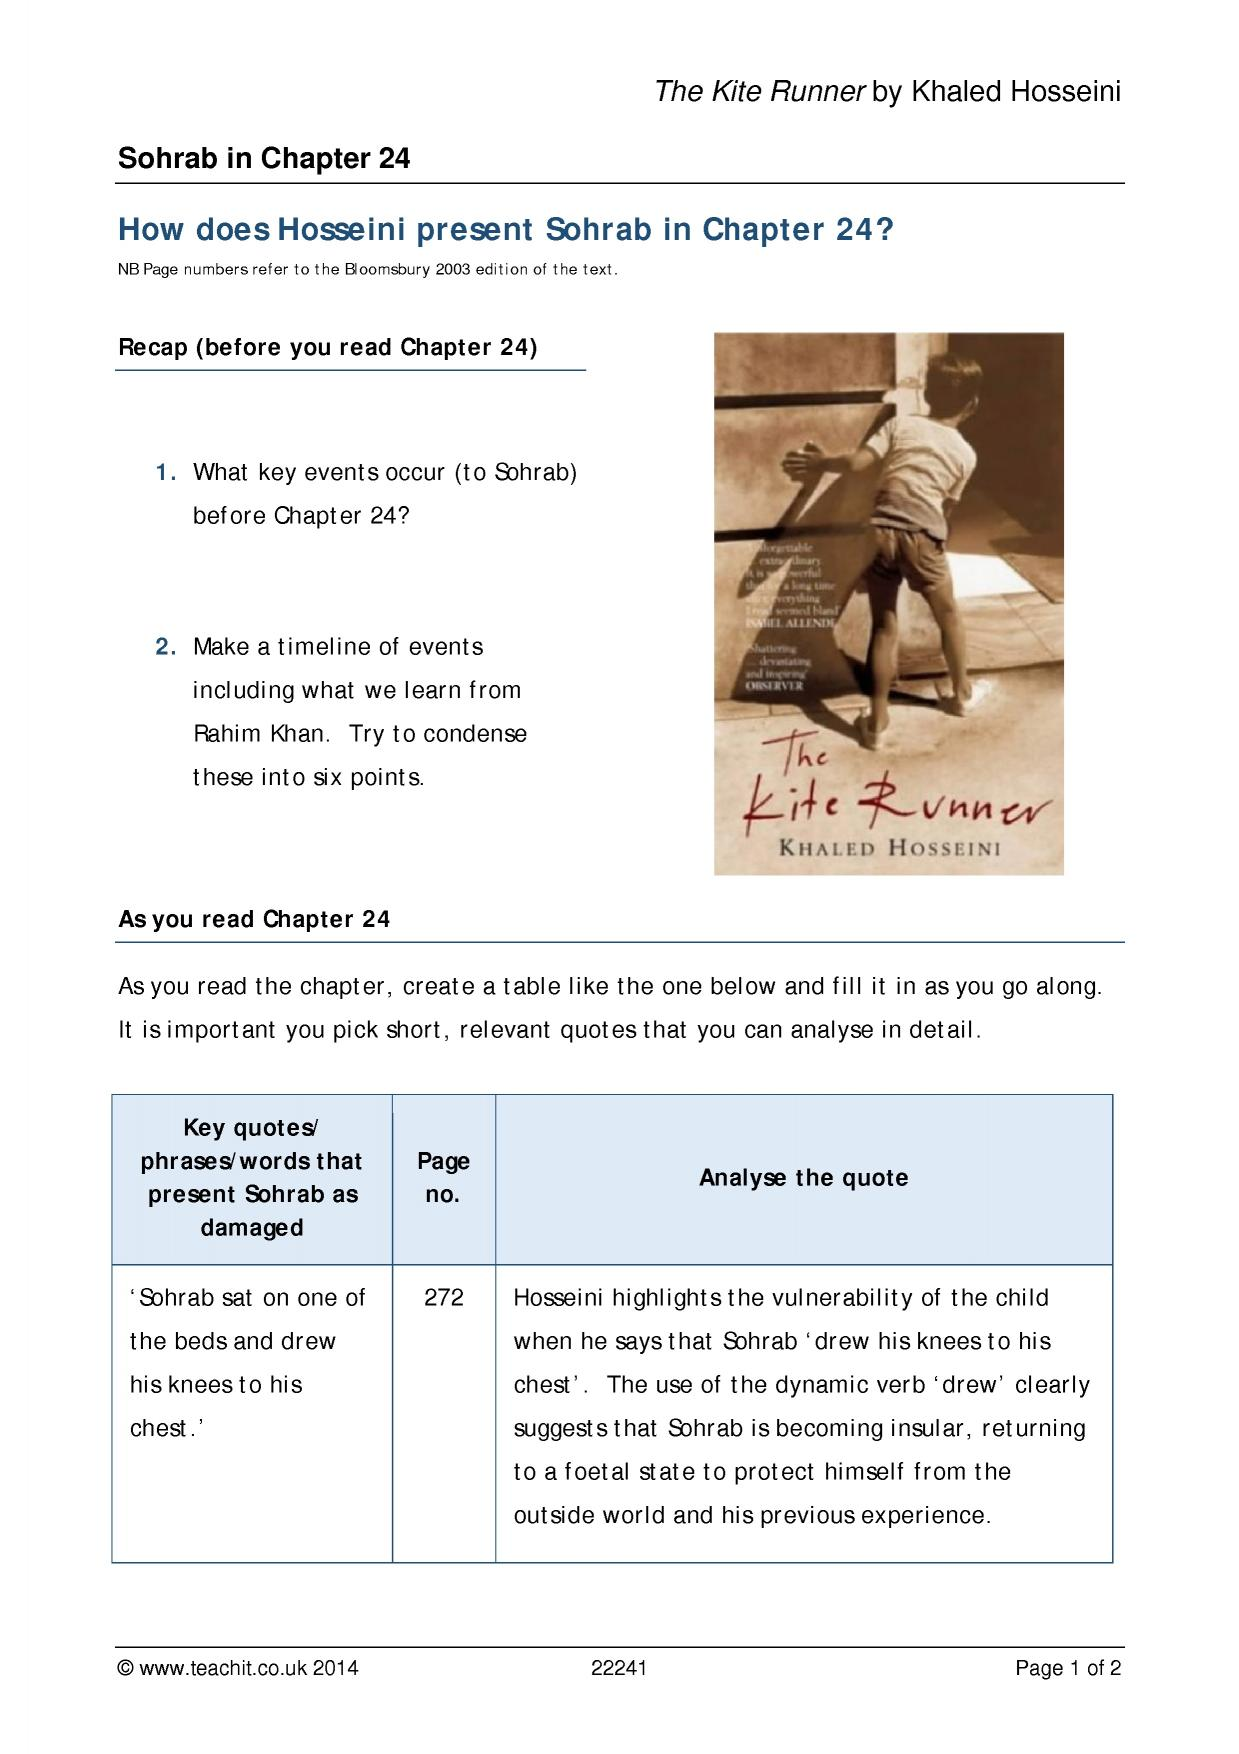 chapter 21 notes the kite runner essay The plot of the kite runner revolves around the amir, the main character's, betrayal of his best friend, hassanthe constant cycle of betrayal and need for redemption fuels the book this existential thought is the cause of everything precedes it.